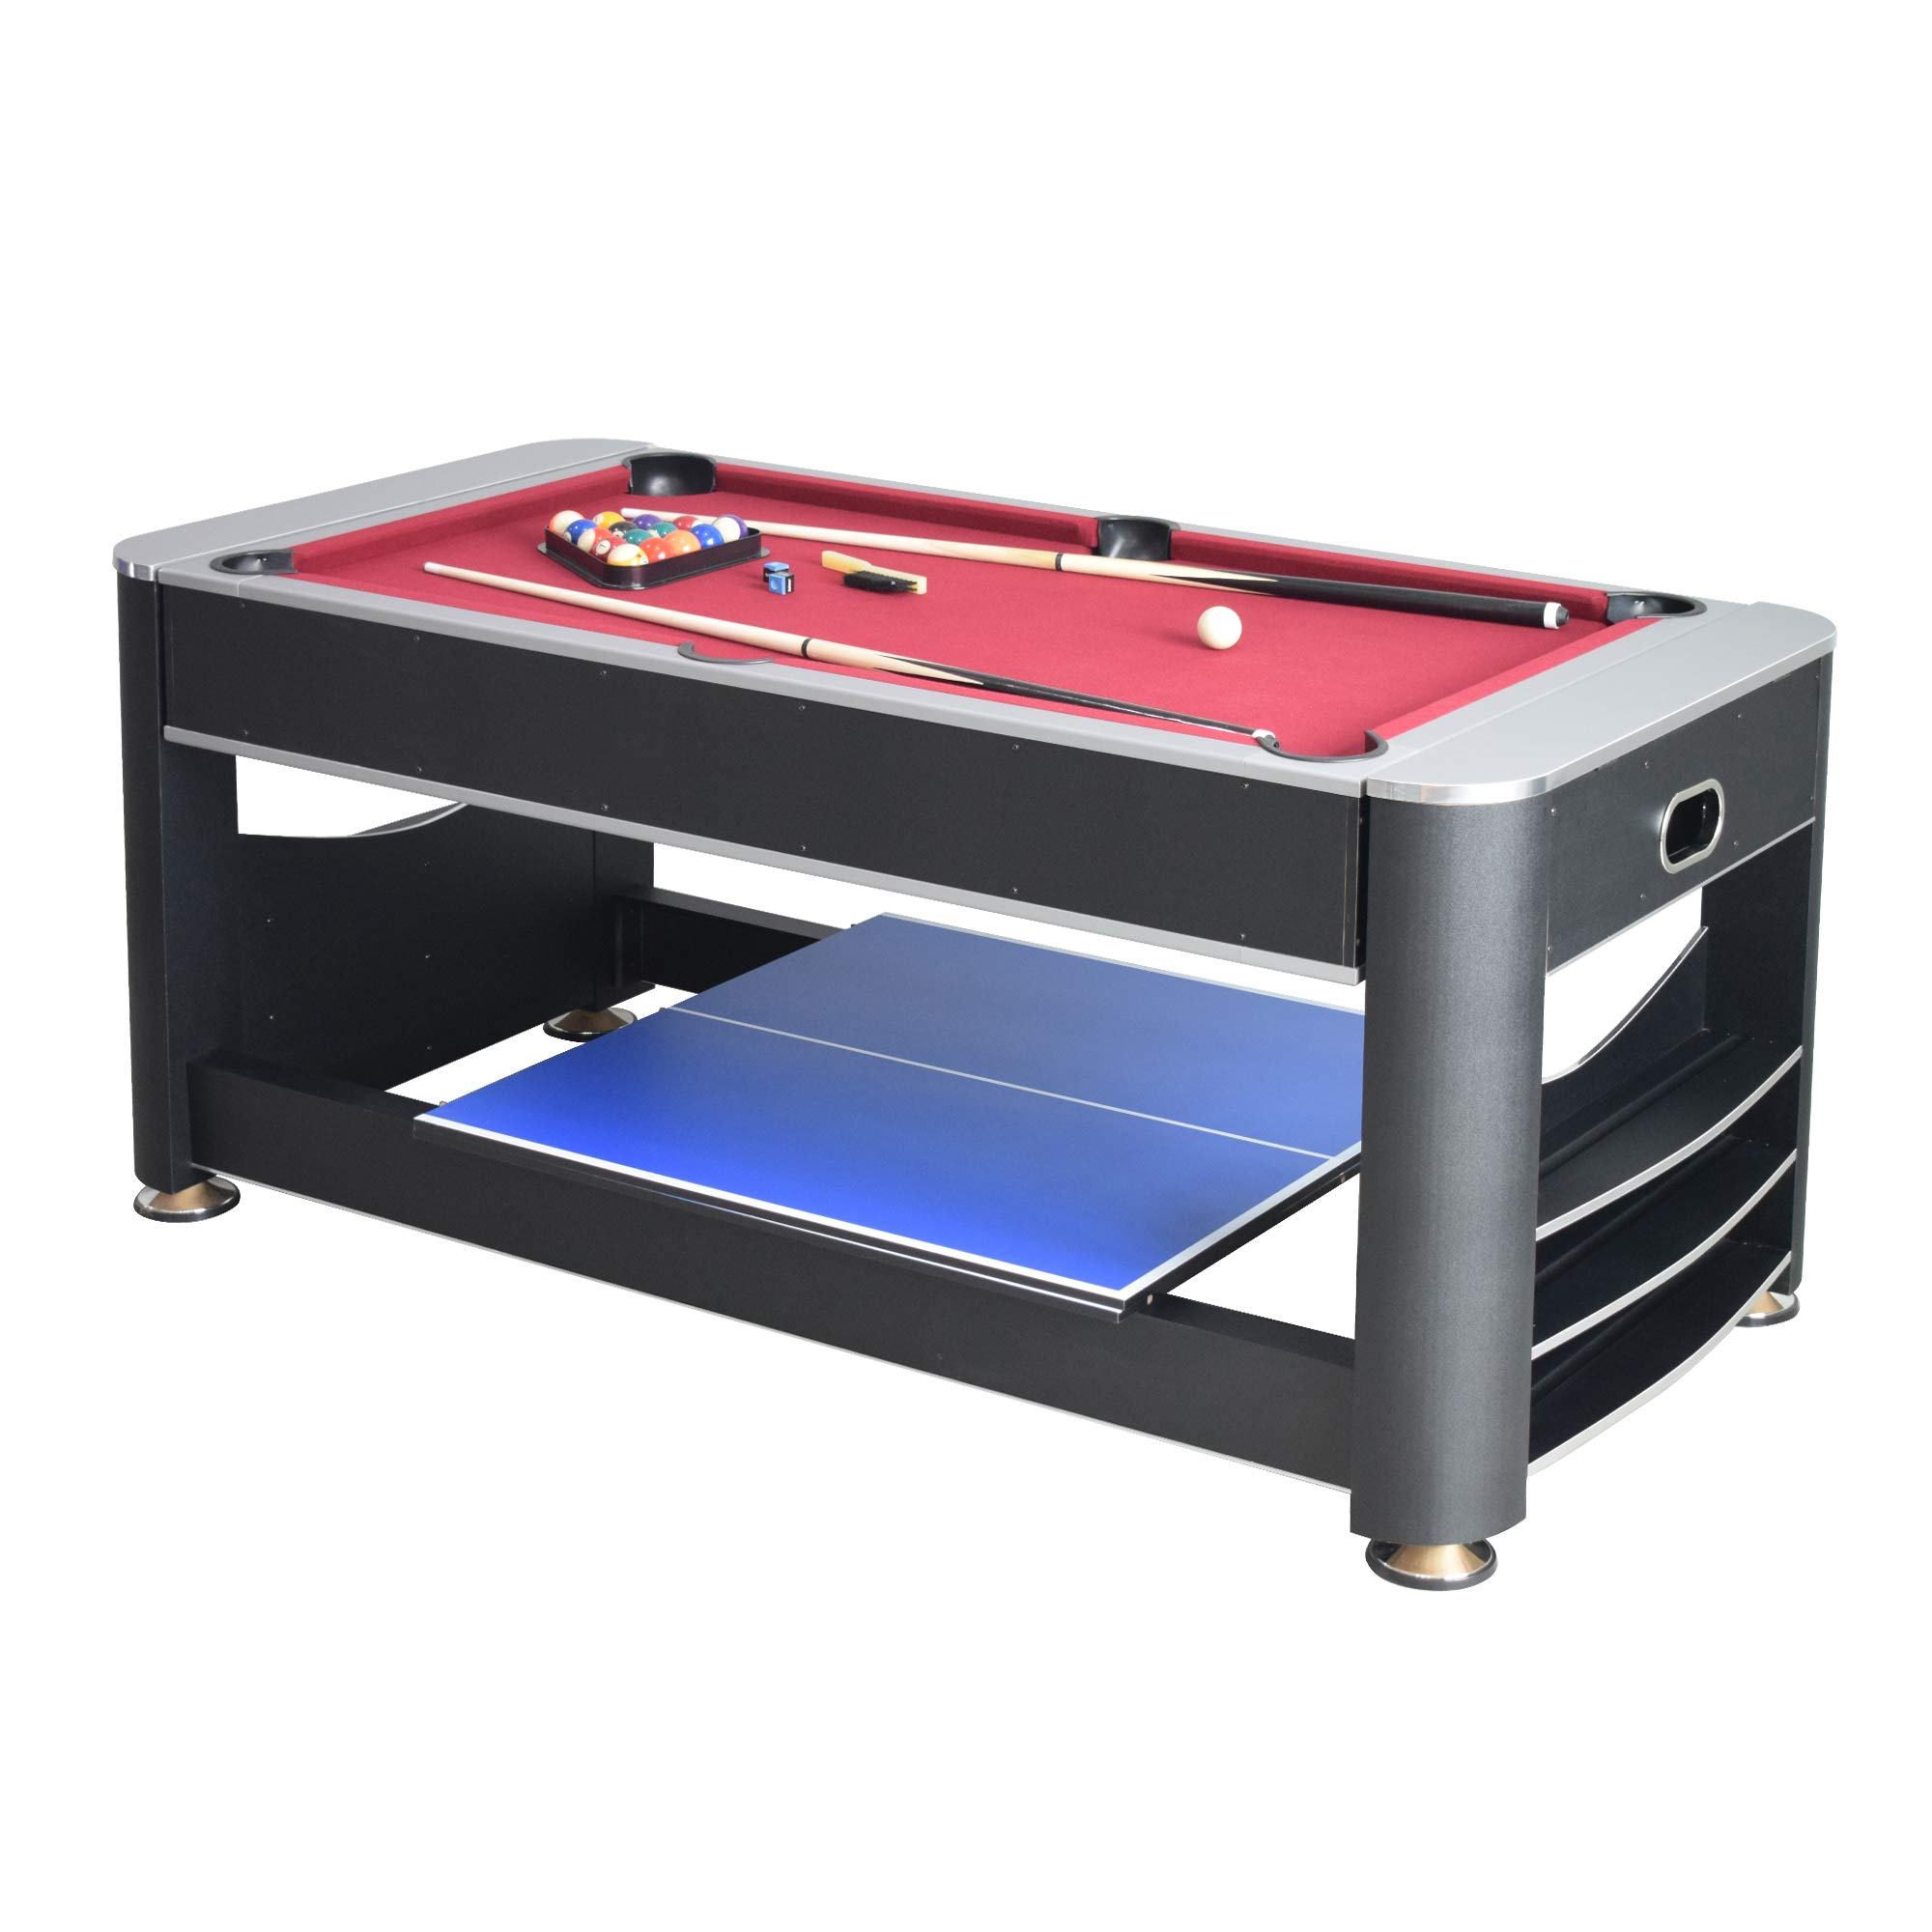 Triple Threat 6-ft 3-in-1 Multi Game Table with Billiards, Air Hockey, and Table Tennis by Hathaway